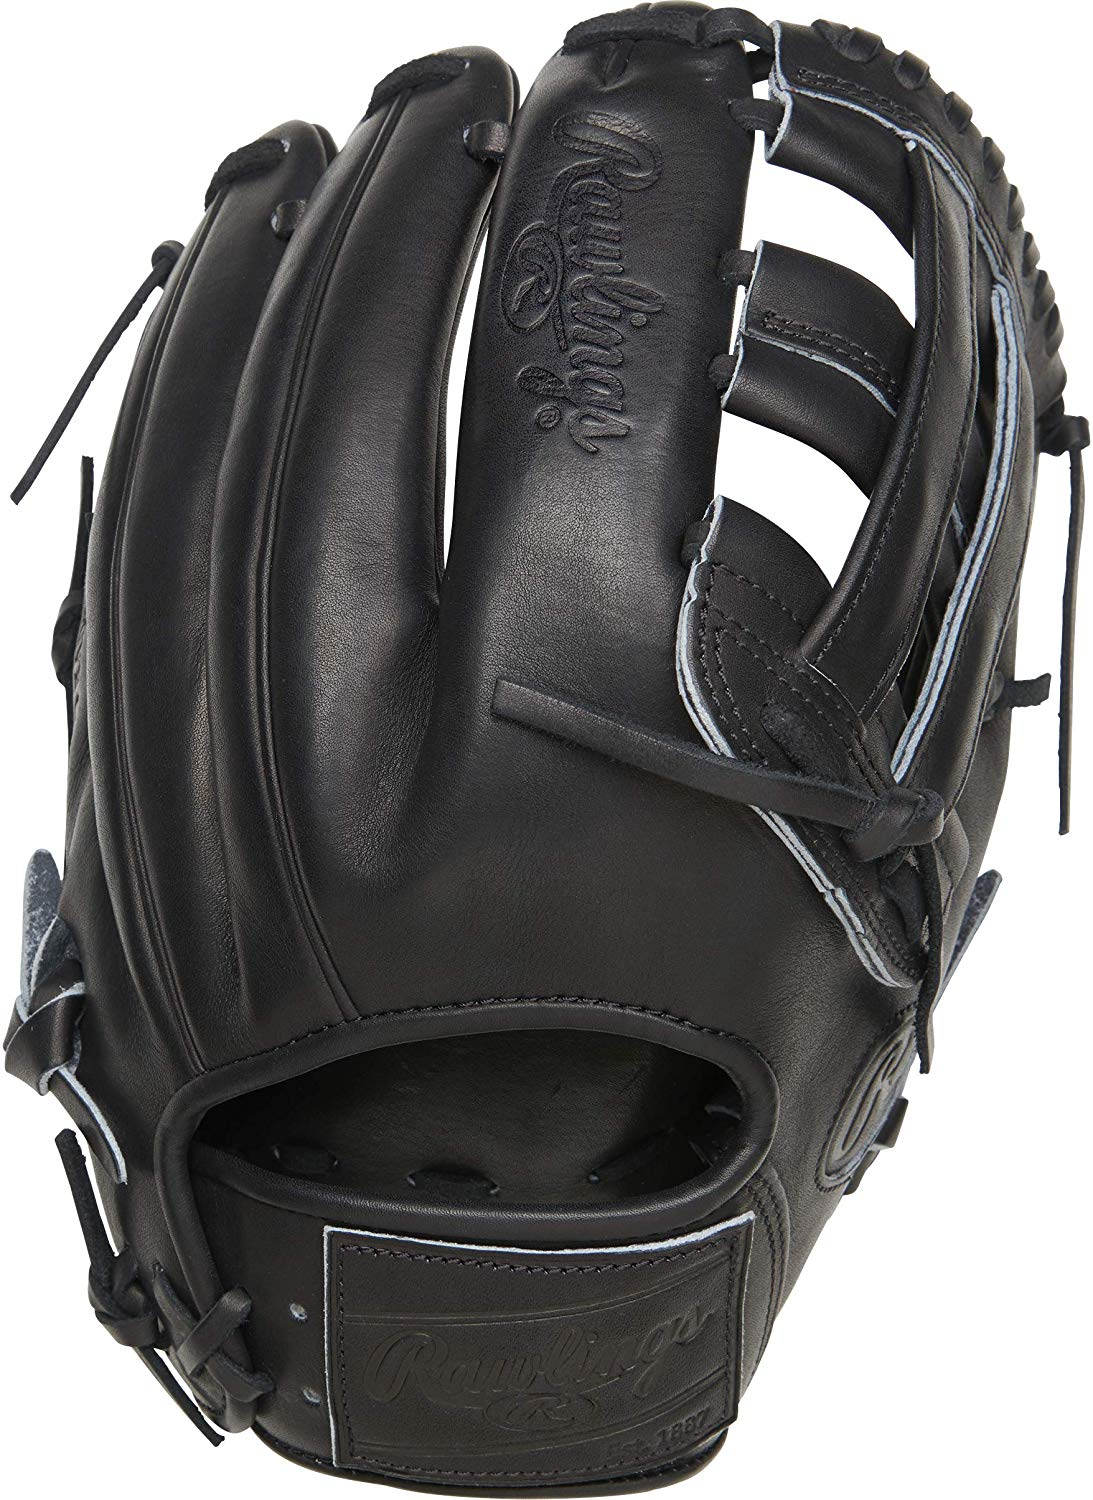 rawlings-pro-label-black-baseball-glove-12-25-right-hand-throw PROKB17-6B-RightHandThrow Rawlings 083321691386 <p>12.25 pattern Limited Edition Kris Bryant Pattern Indent Stamping On Shell